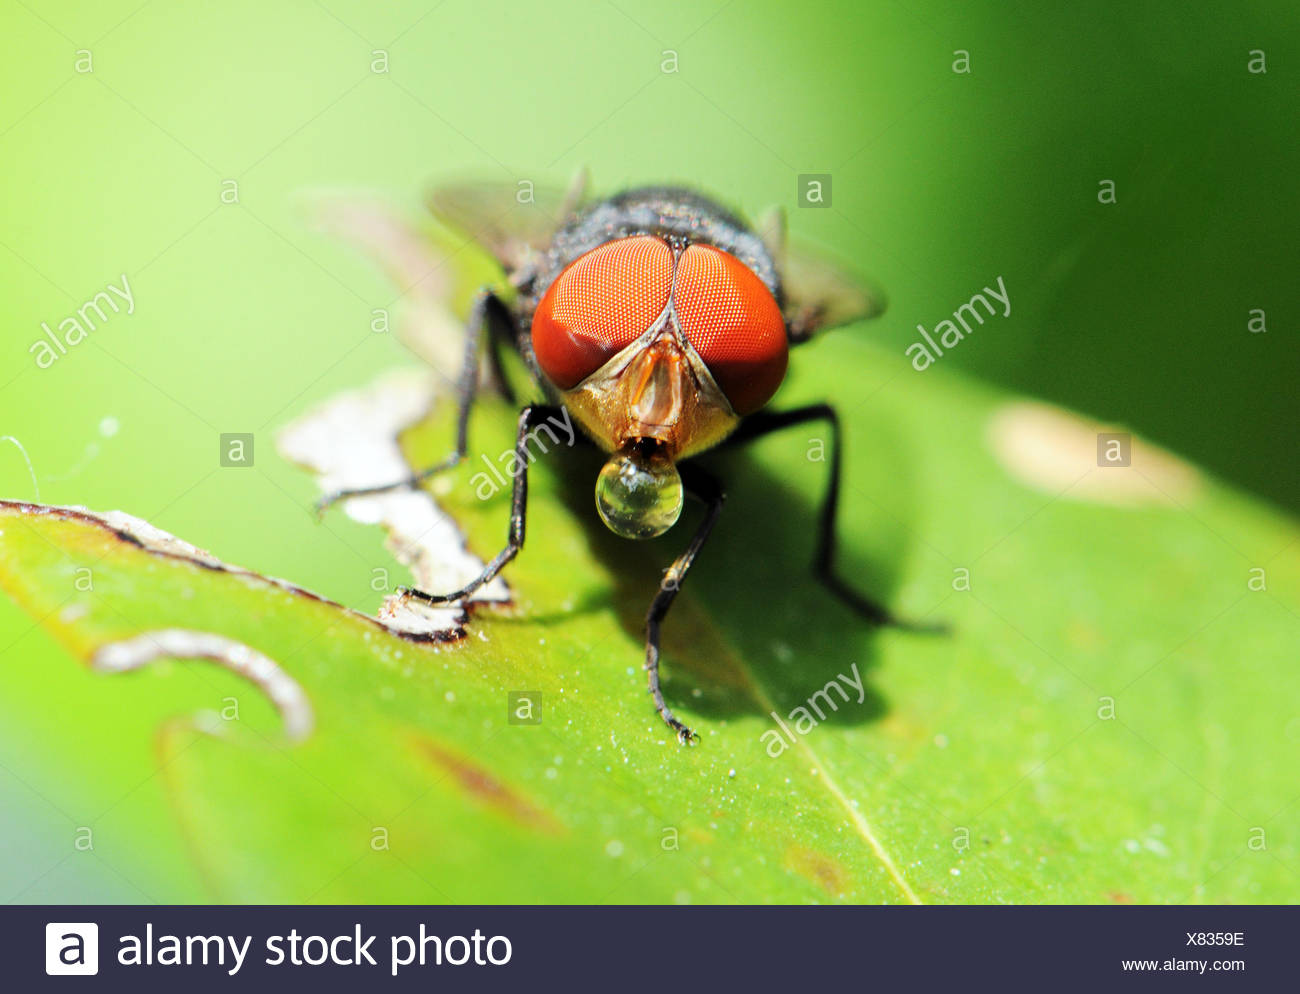 Fly on a leaf blowing a bubble, Okinawa, Japan - Stock Image